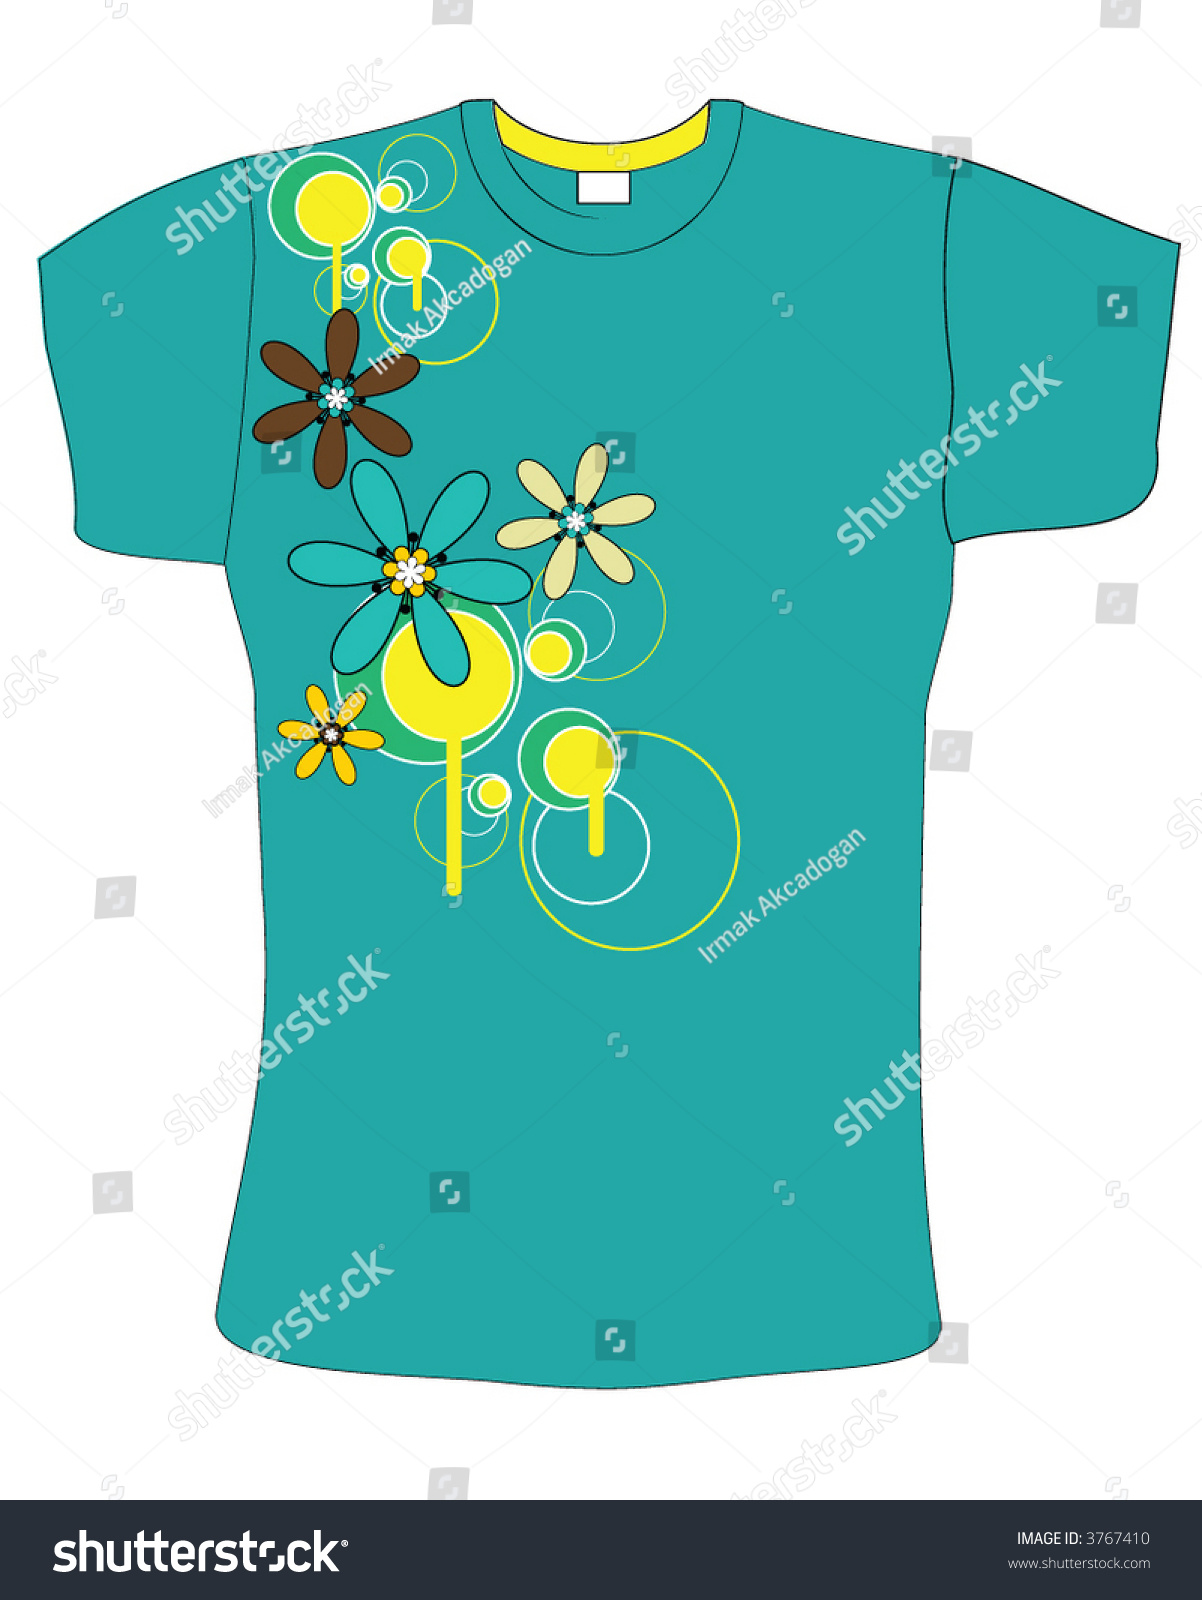 Retro abstract blue color vector t shirt design 3767410 for Shutterstock t shirt design